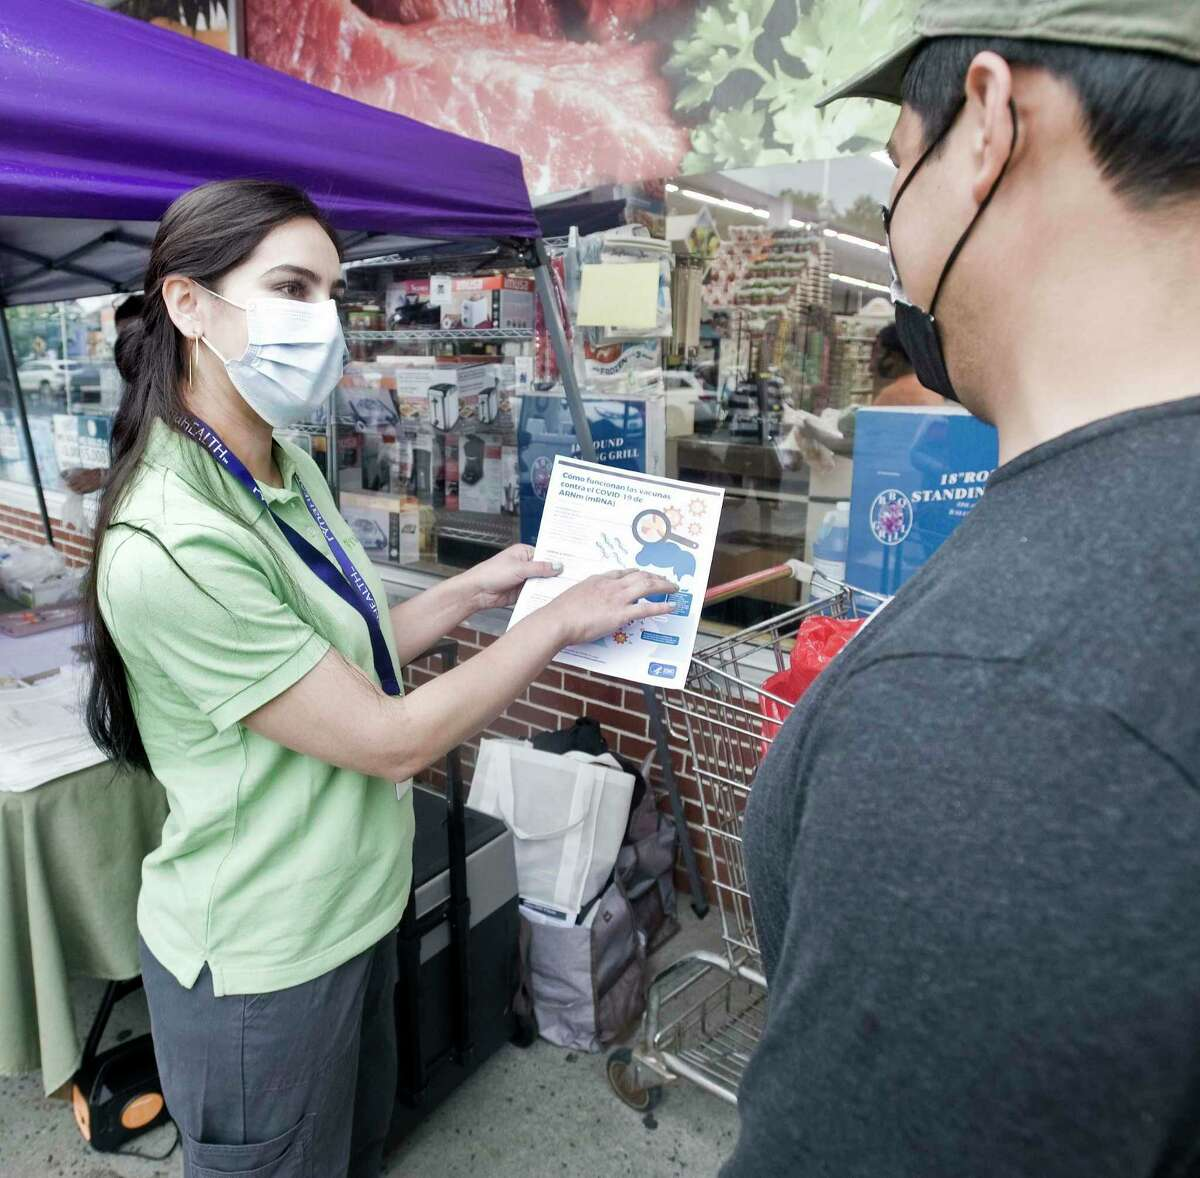 Jackie Felix, a nurse with the Ridgefield Visiting Nurse Association, explains COVID-19 vaccine information to Oscar Flores of Pawling, at CTown Supermarket in Danbury. Tuesday, June 22, 2021